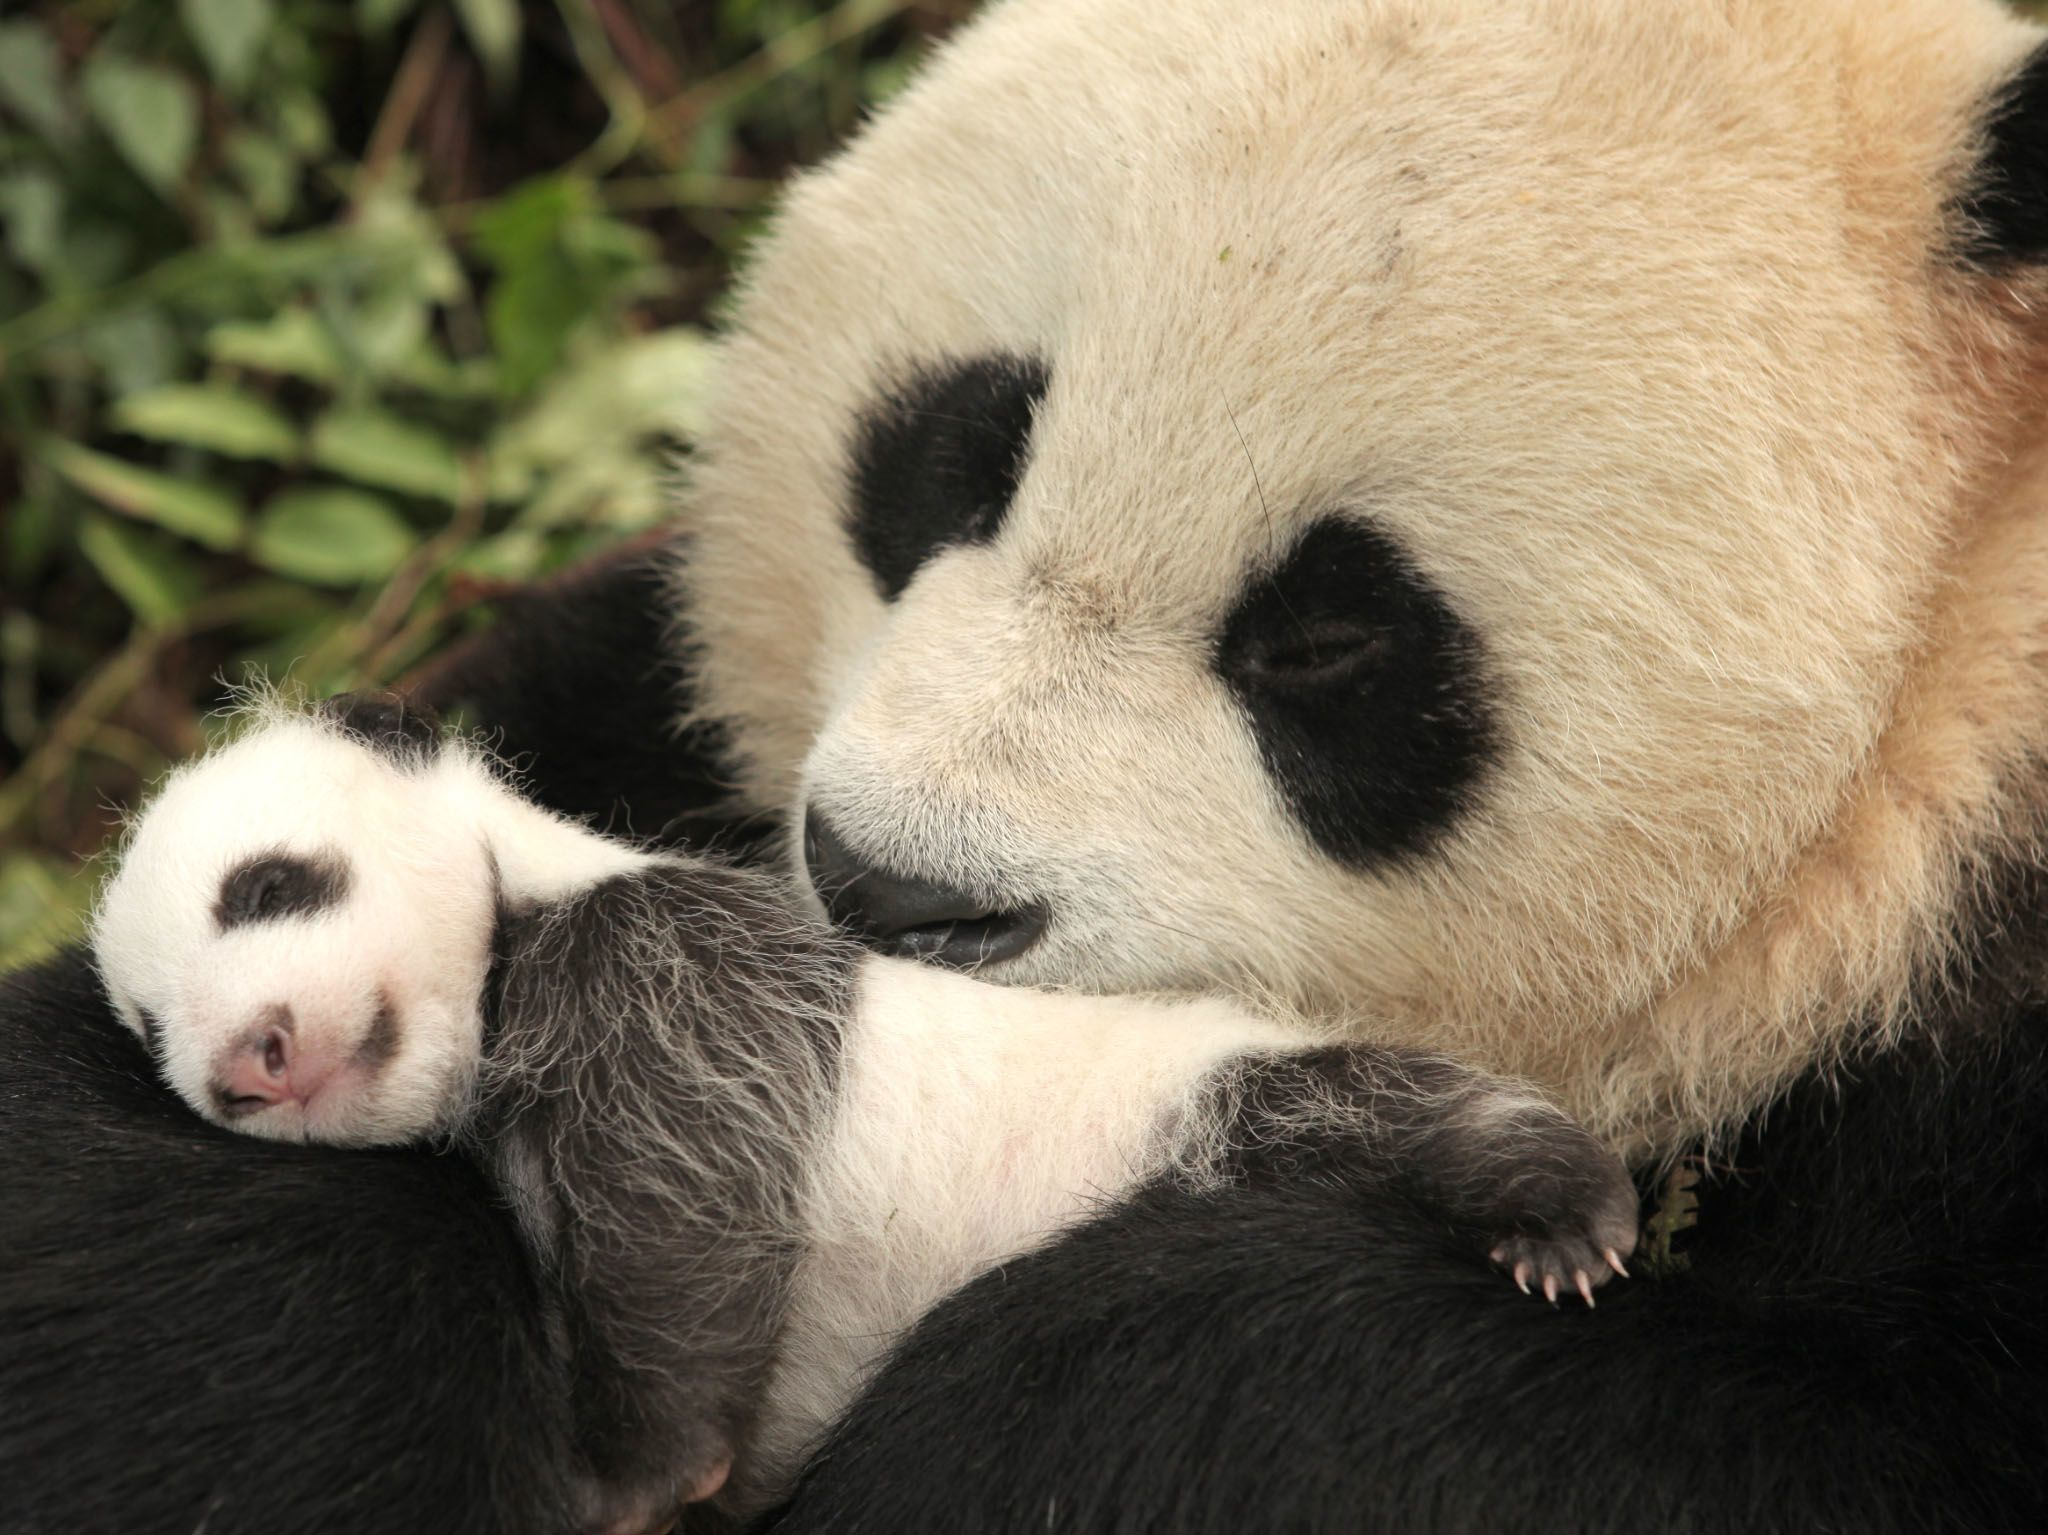 One-month-old panda and mum, Wolong. This image is from Panda goes wild. [Photo of the day - April 2021]